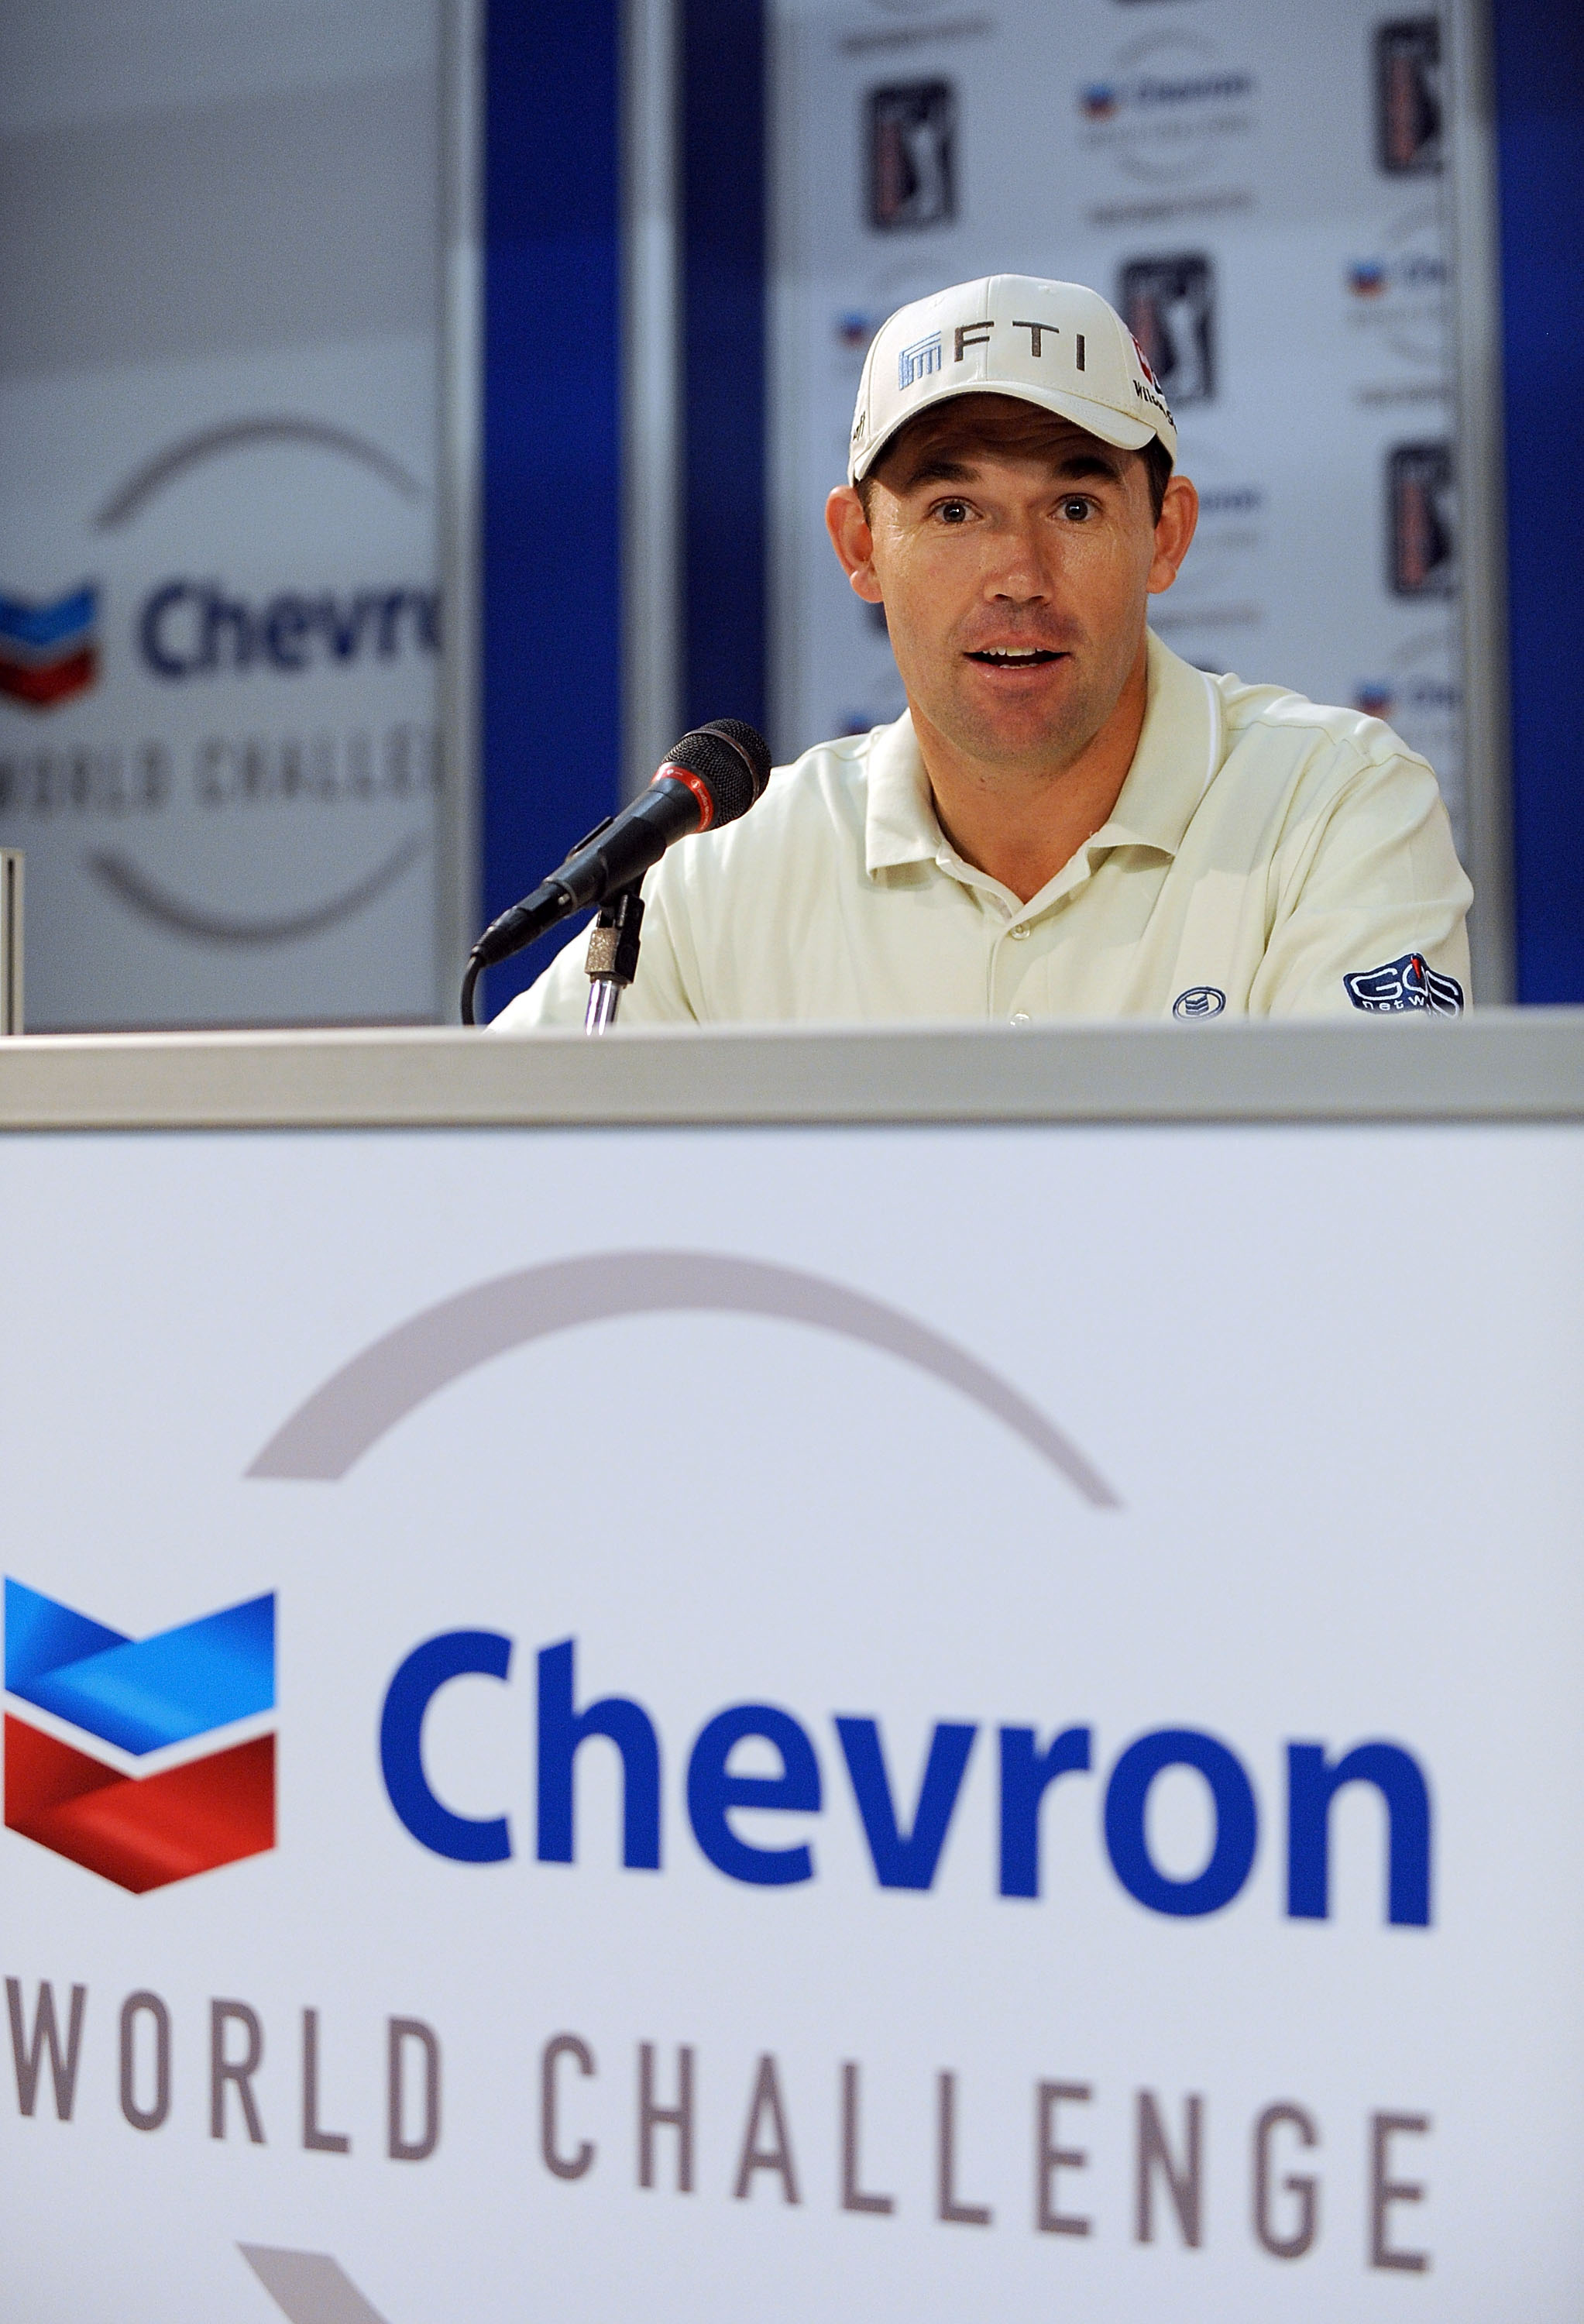 Padraig Harrington at a press conference Dec. 1 at the Chevron World Challenge.